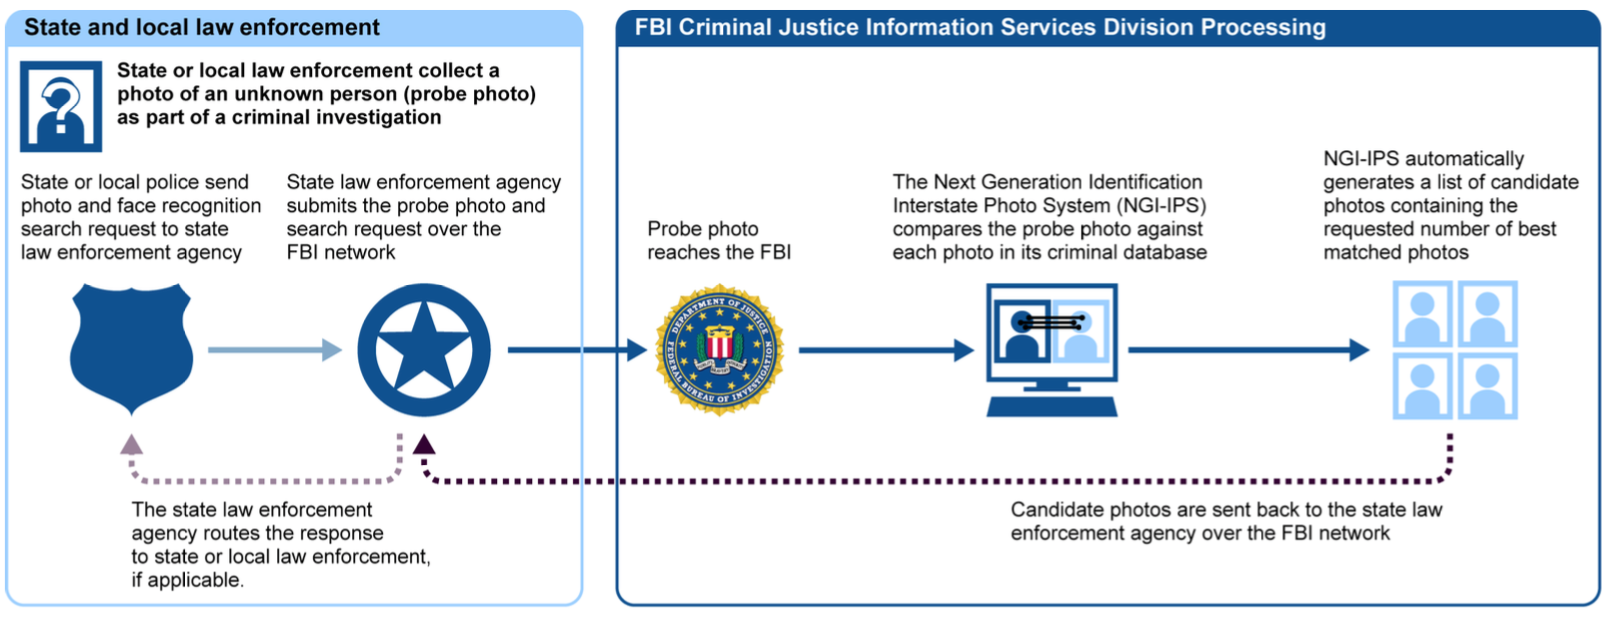 """<a href=""""http://www.gao.gov/products/GAO-16-267"""">U.S. Government Accountability Office</a>"""